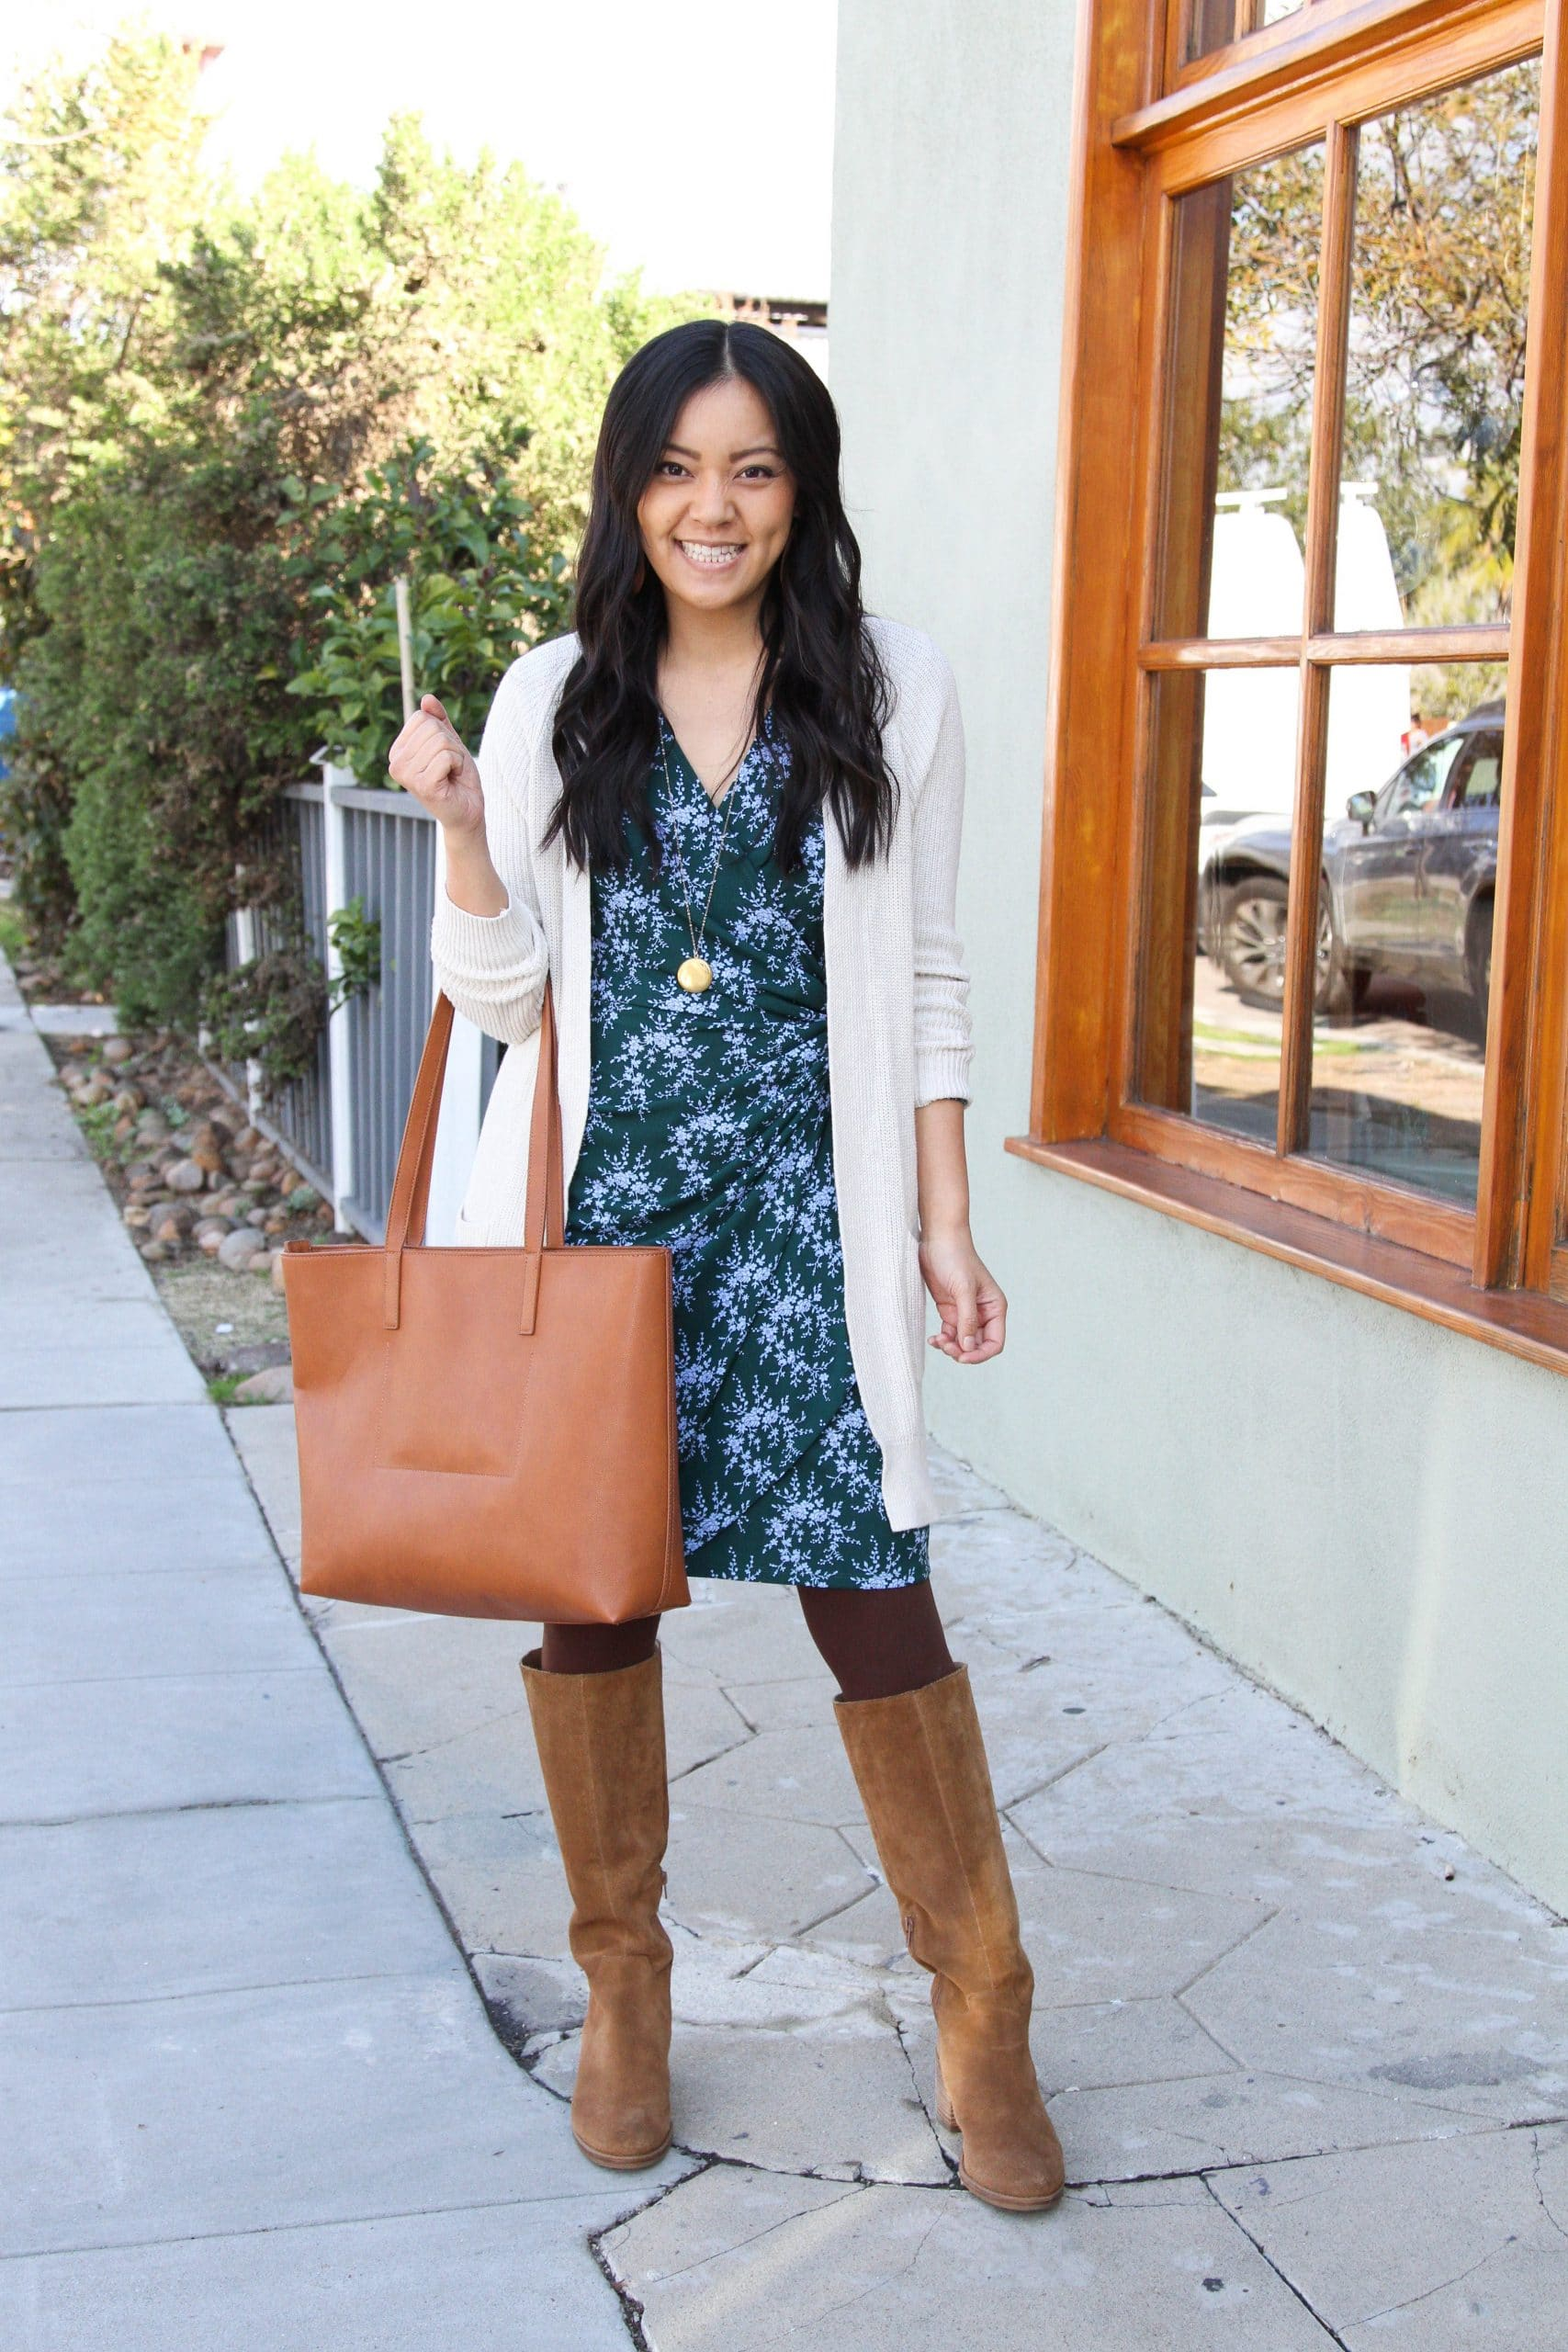 Winter Dress Outfit: green and blue printed wrap dress + cream cardigan + brown tights + tan suede boots + cognac tote + long gold circle pendant necklace